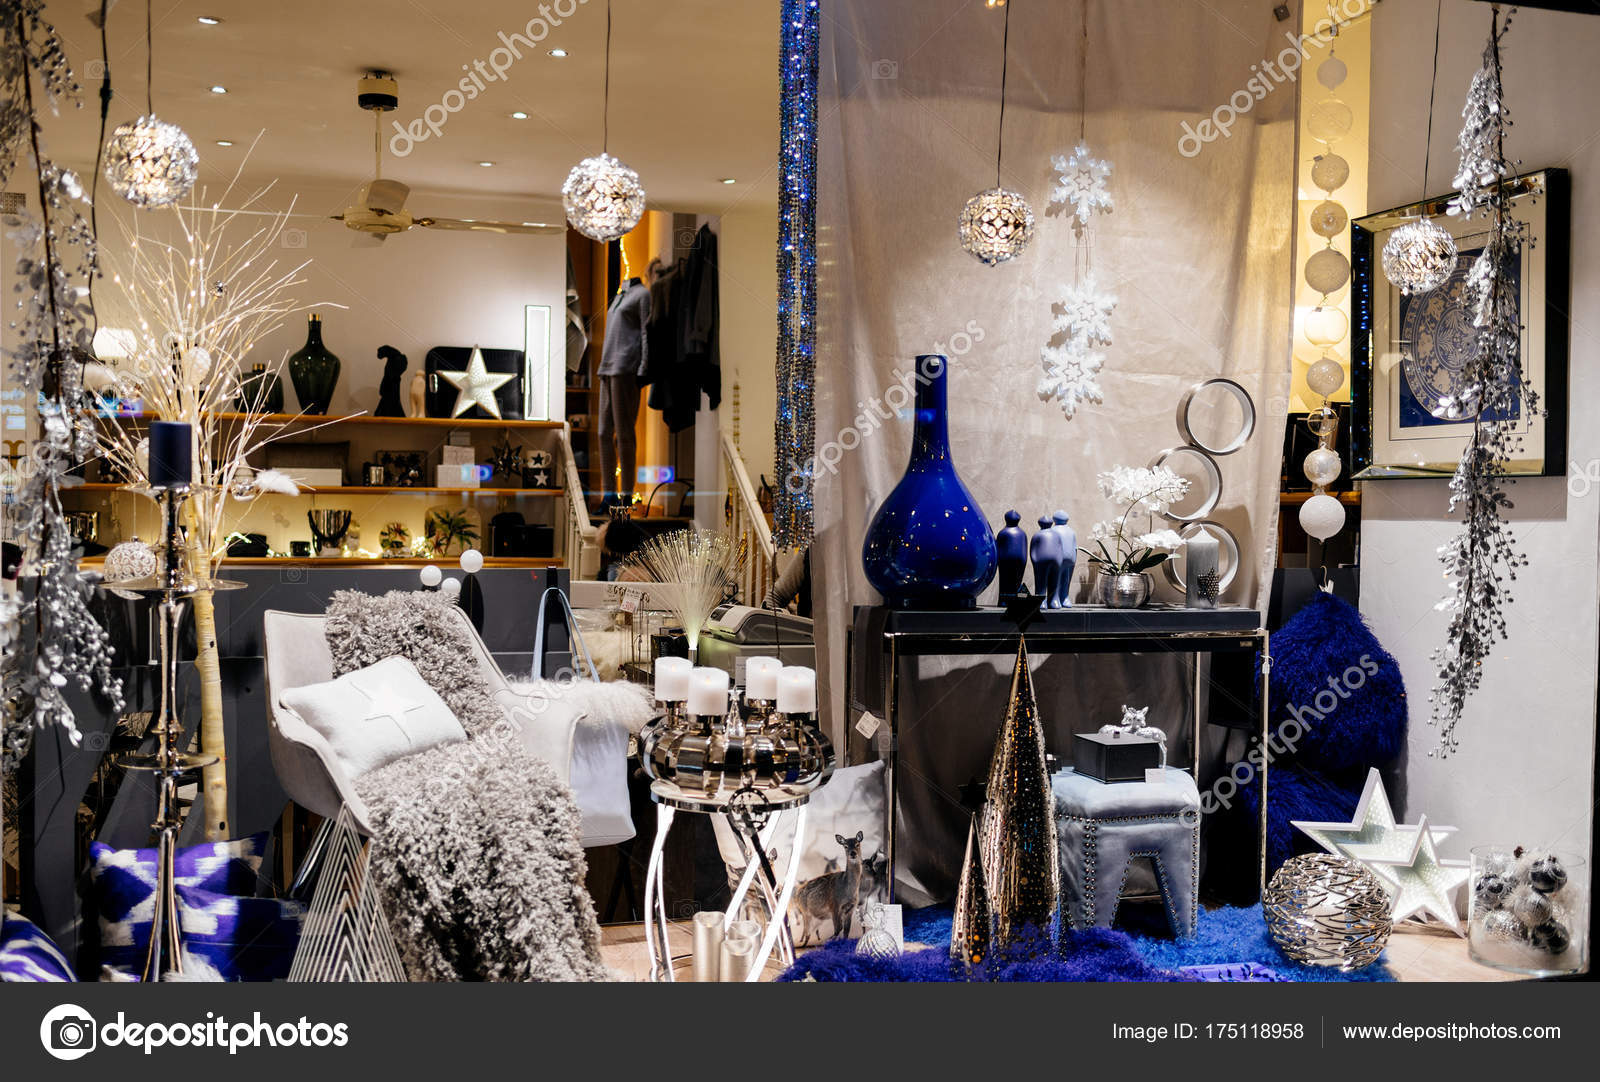 Christmas decorations in store window showcase of a floral show pin Strasbourg, France with multiple colorful globes, vases and toys — Photo by ifeelstock